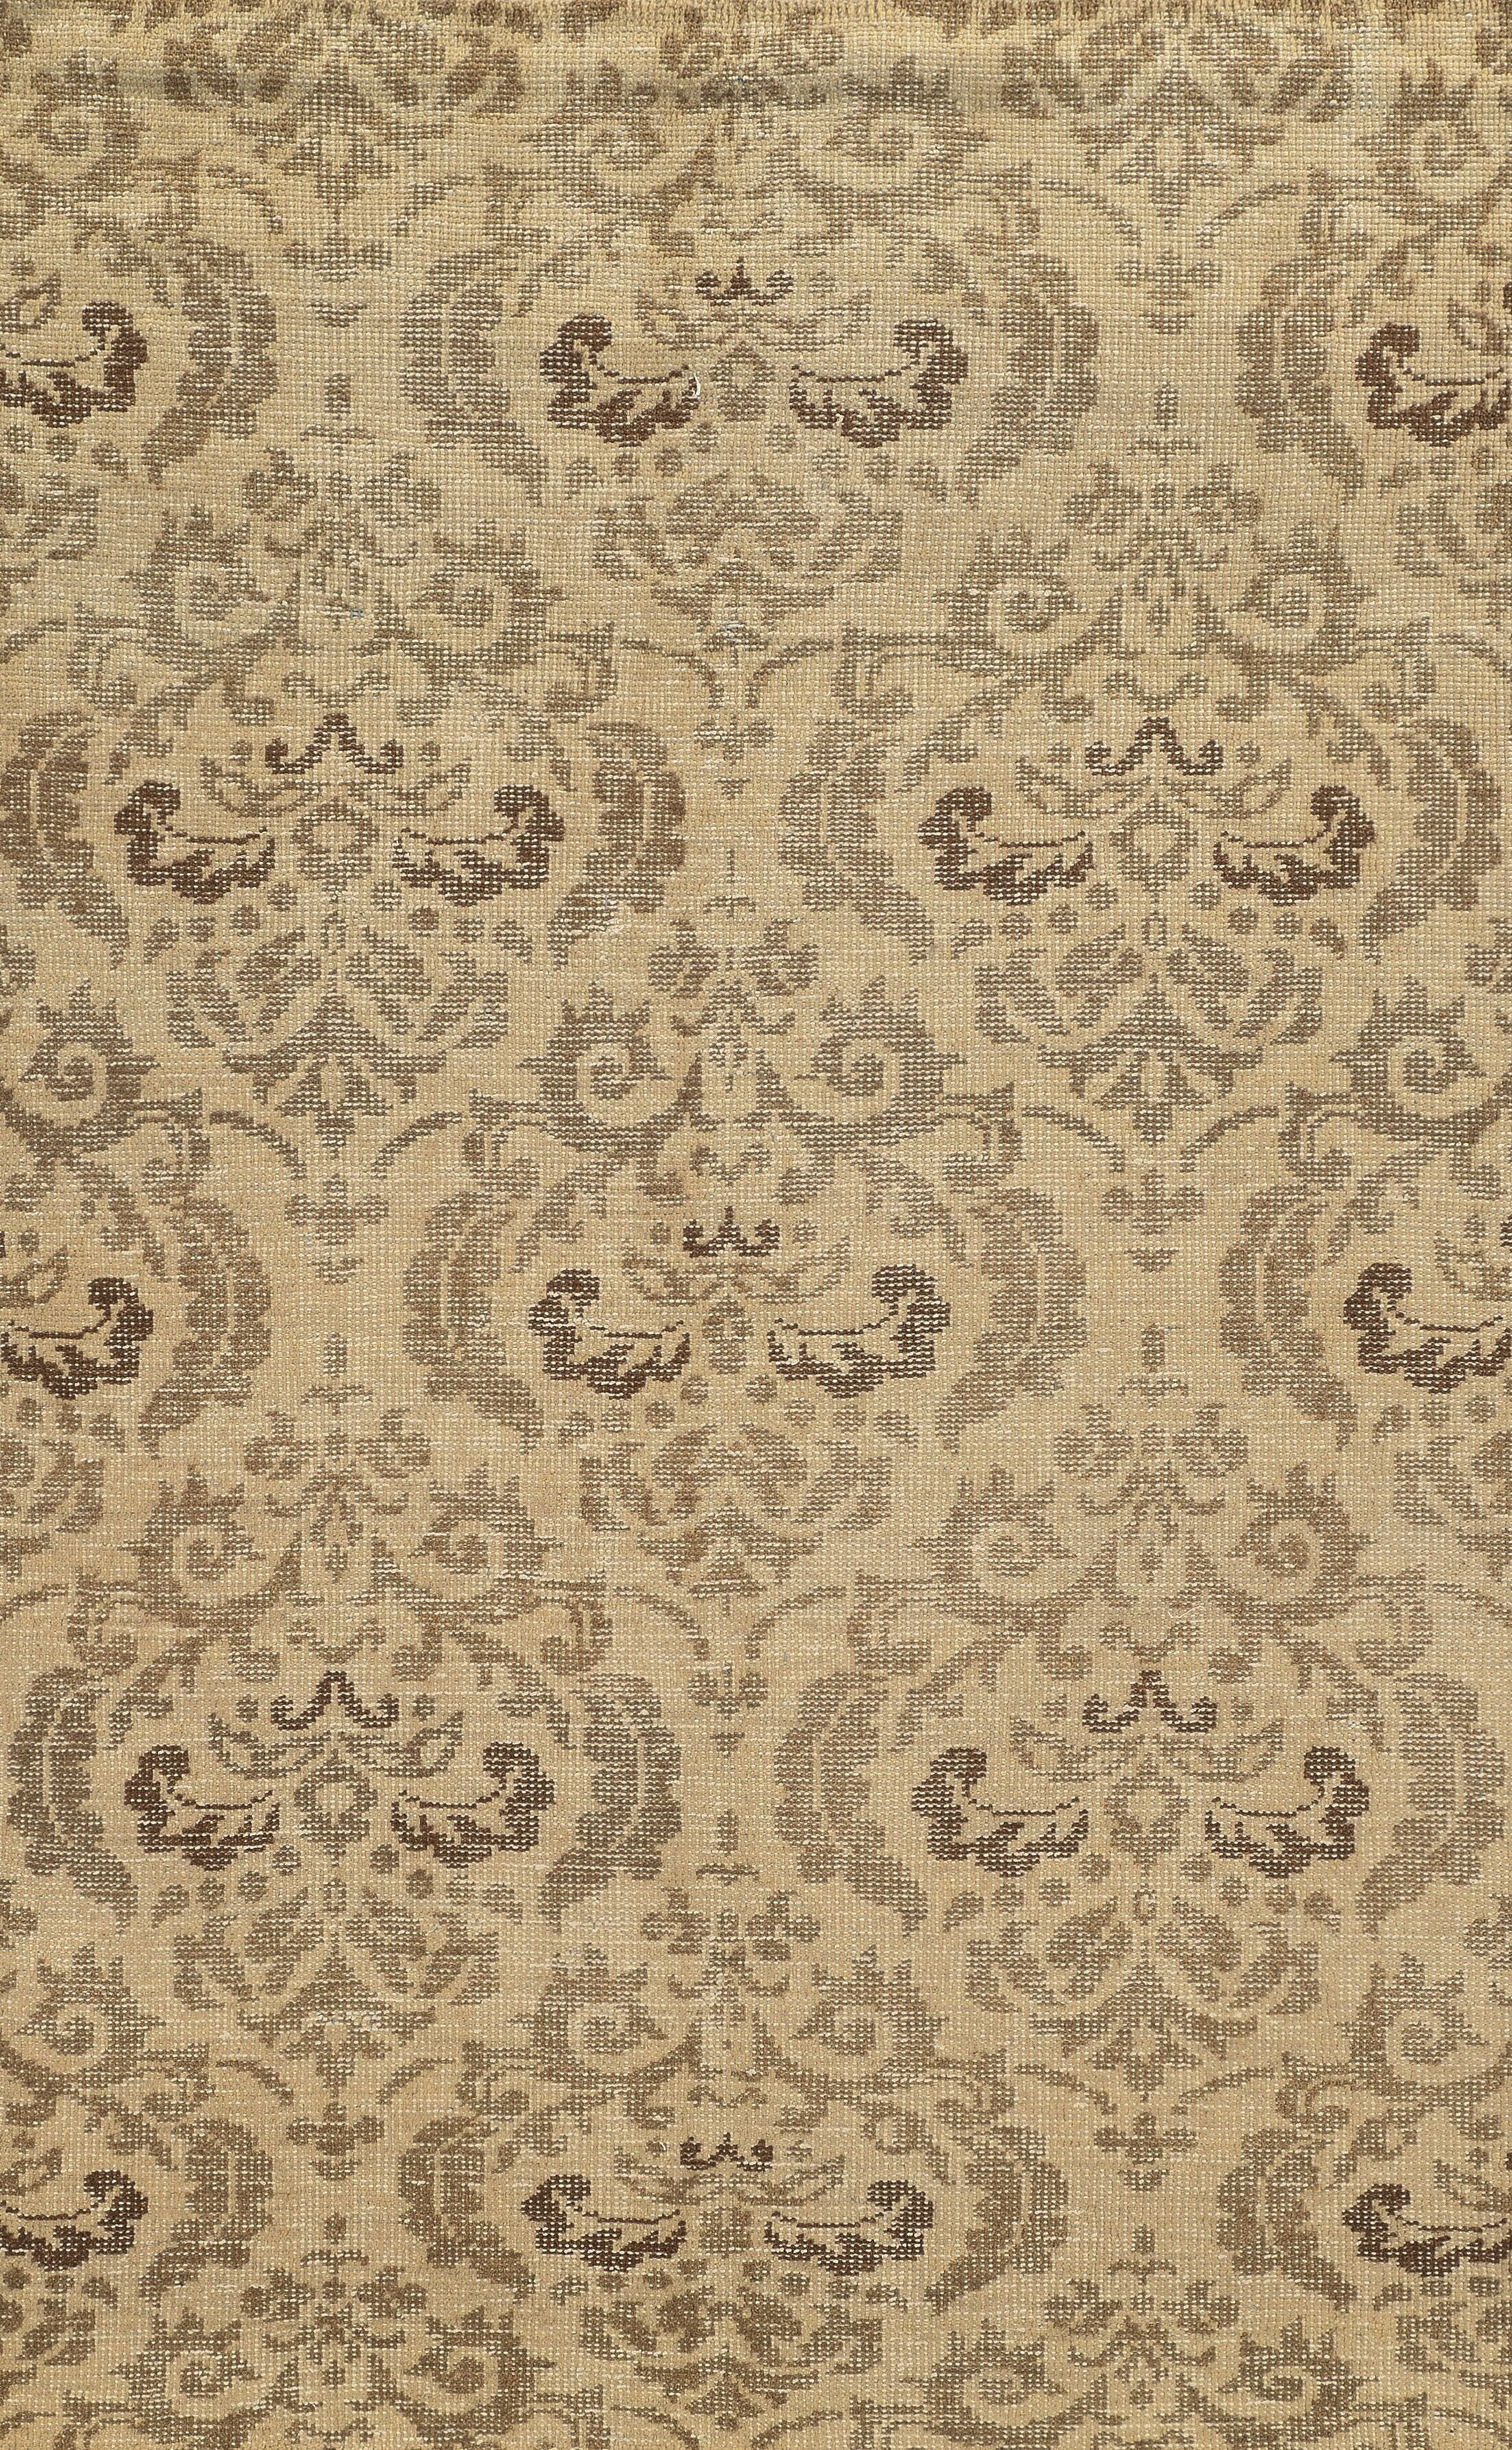 Almeria Hand-Knotted Ivory/Grey Area Rug Rug Size: Rectangle 8' x 10'